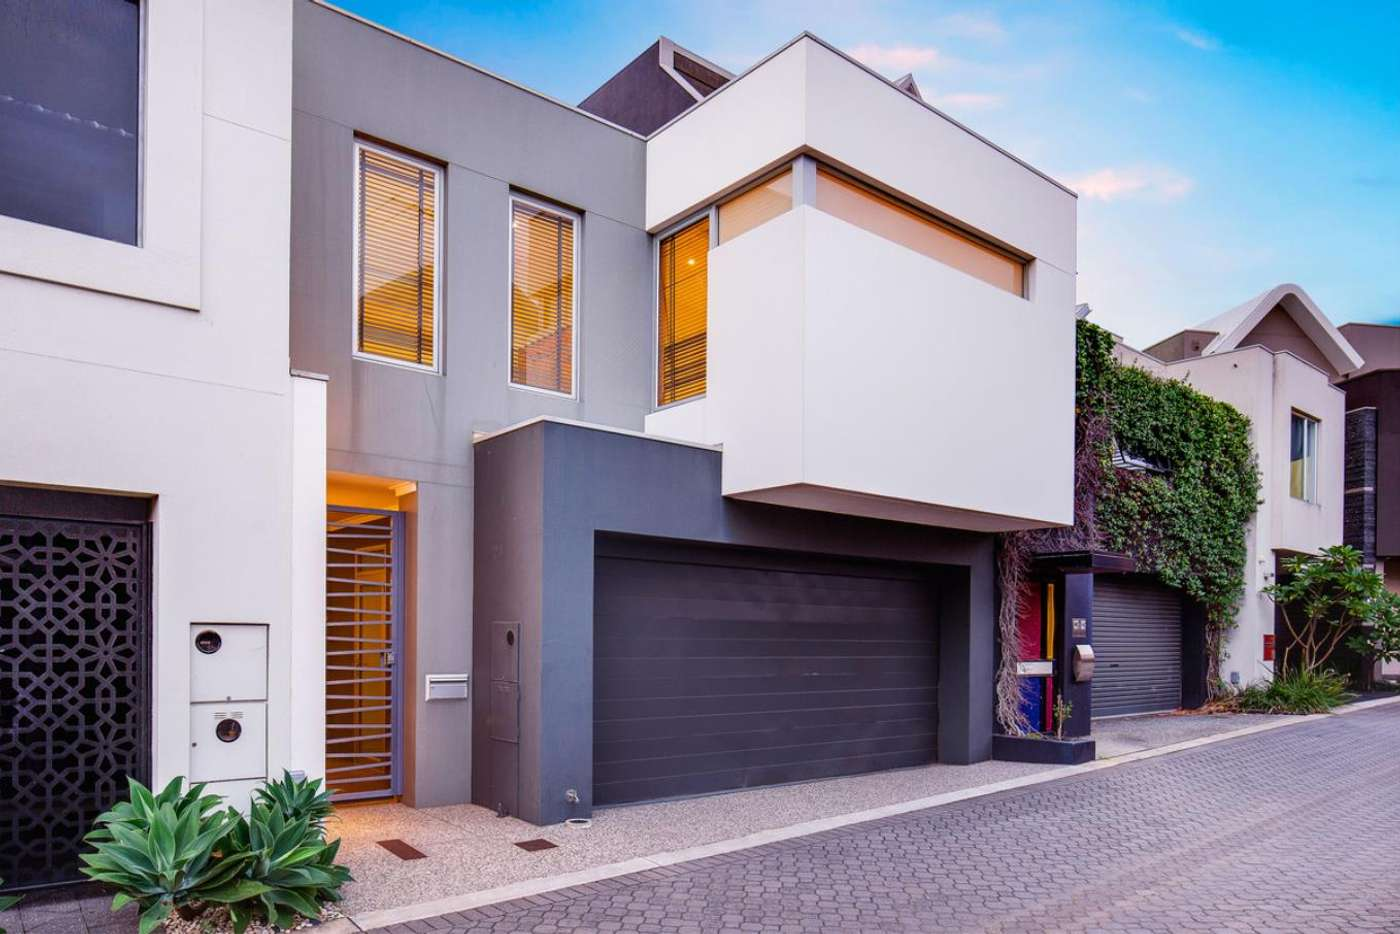 Main view of Homely house listing, 32 Rossello Lane, Subiaco WA 6008